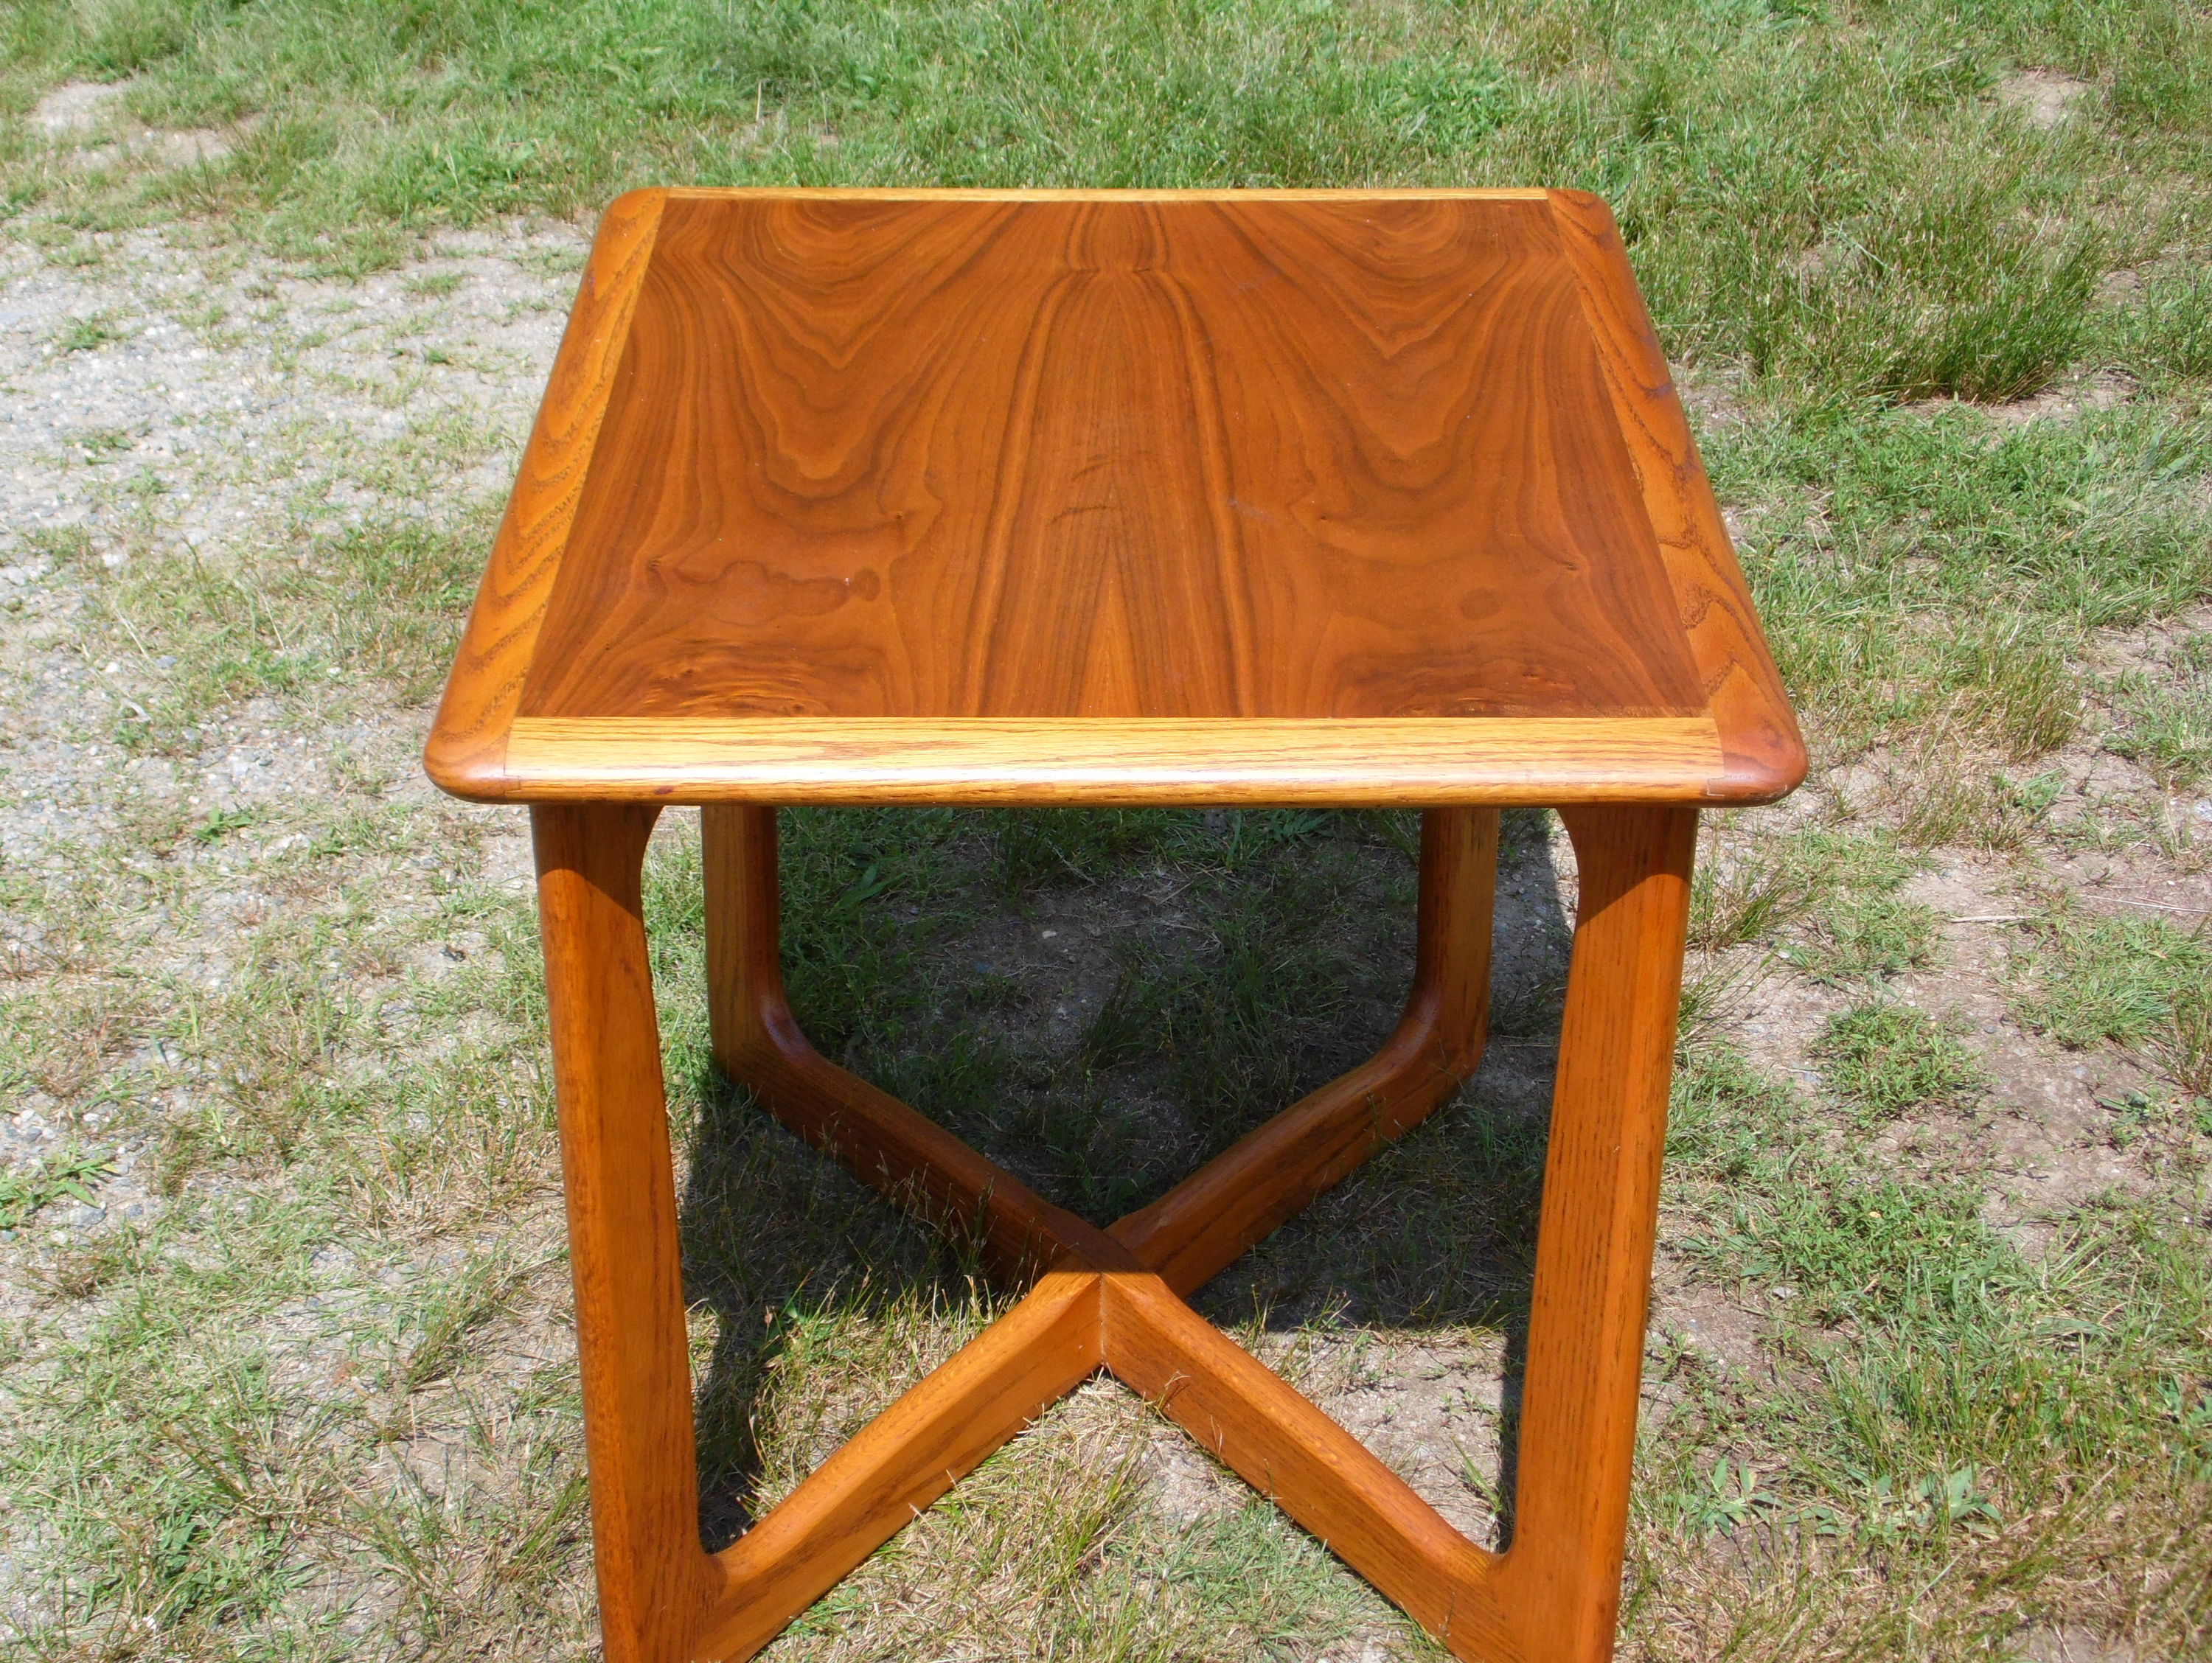 vintage mid century modern lane perception base walnut end table foot sofa side chinese north shore ashley furniture stylish accent unfinished wood chest drawers styles cherry